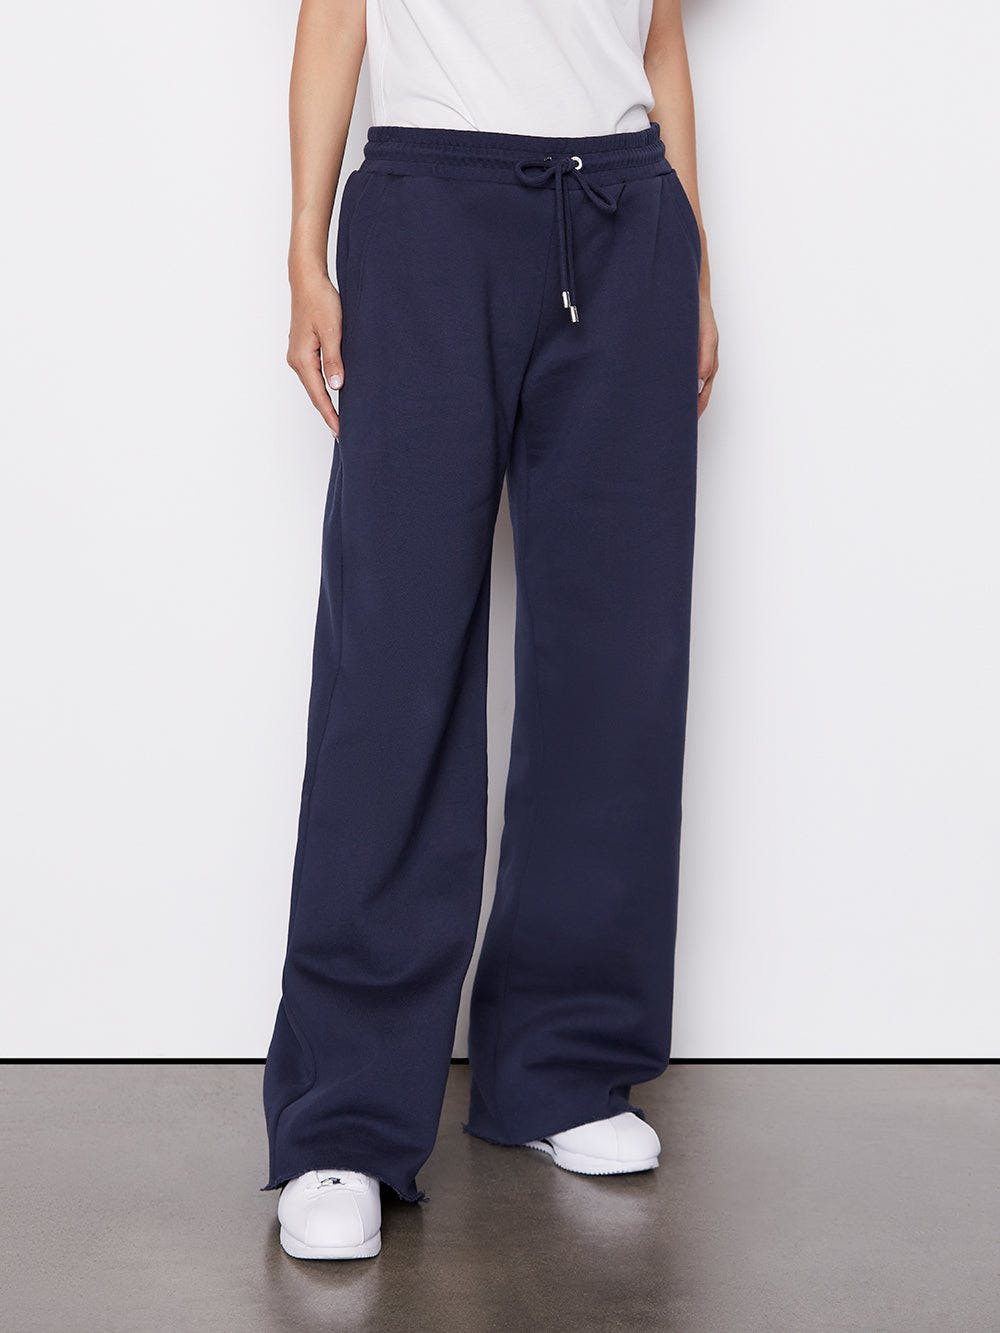 pants front view